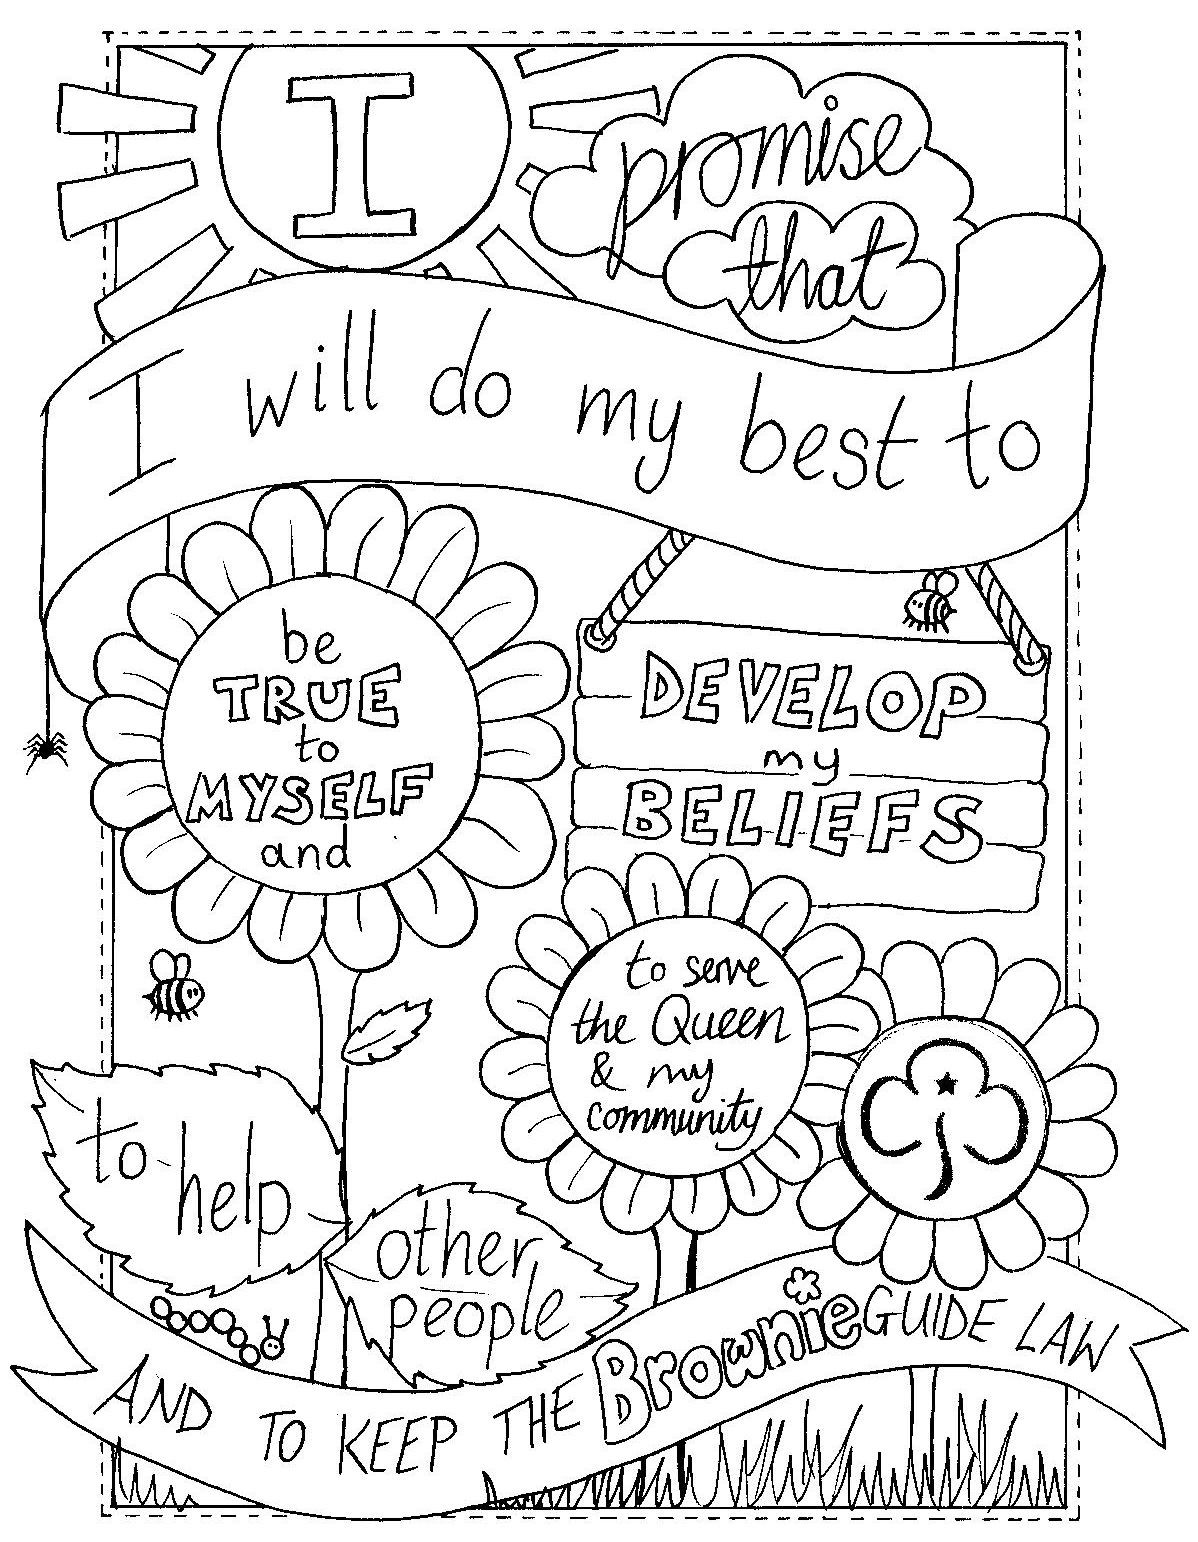 Girl Scout Printable Coloring Pages  Daisy Girl Scout Law Coloring Pages